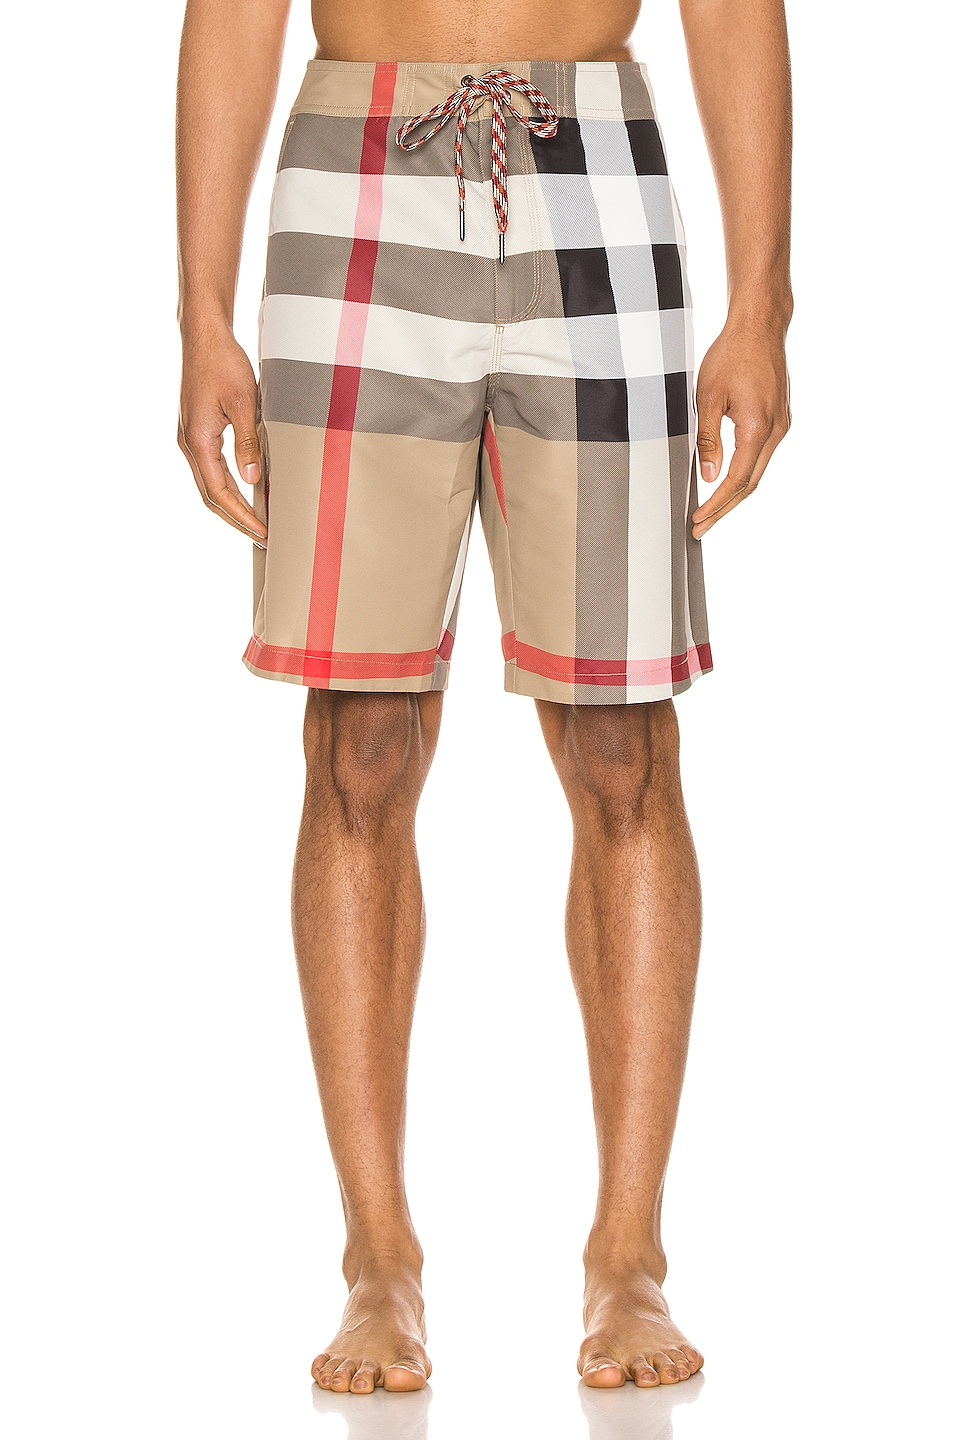 Image 1 of Burberry Breton Shorts in Archive Beige IP Check